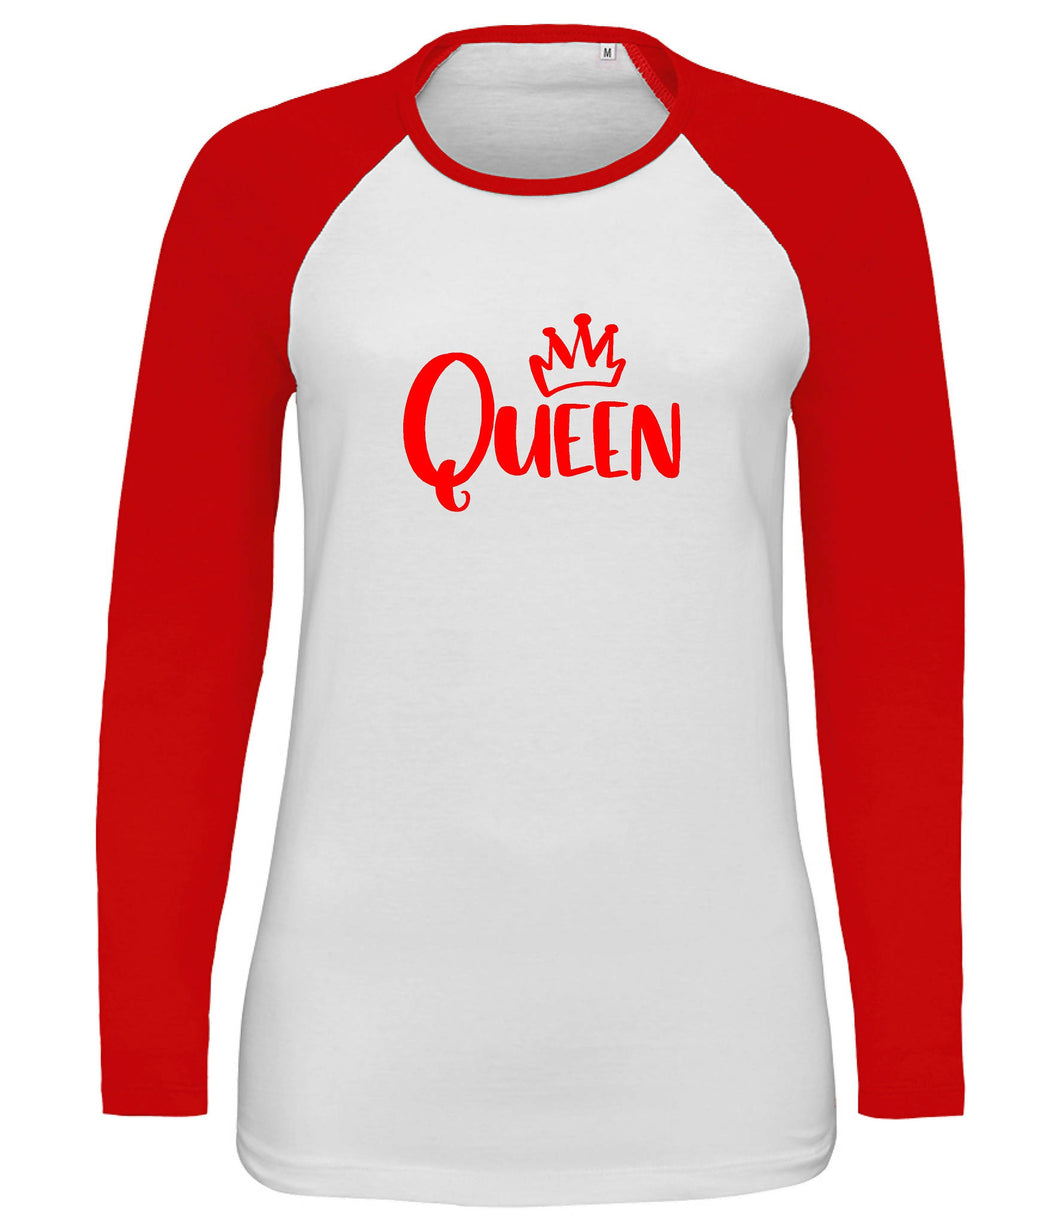 Ladies Long Sleeve Contrast T-shirt Queen